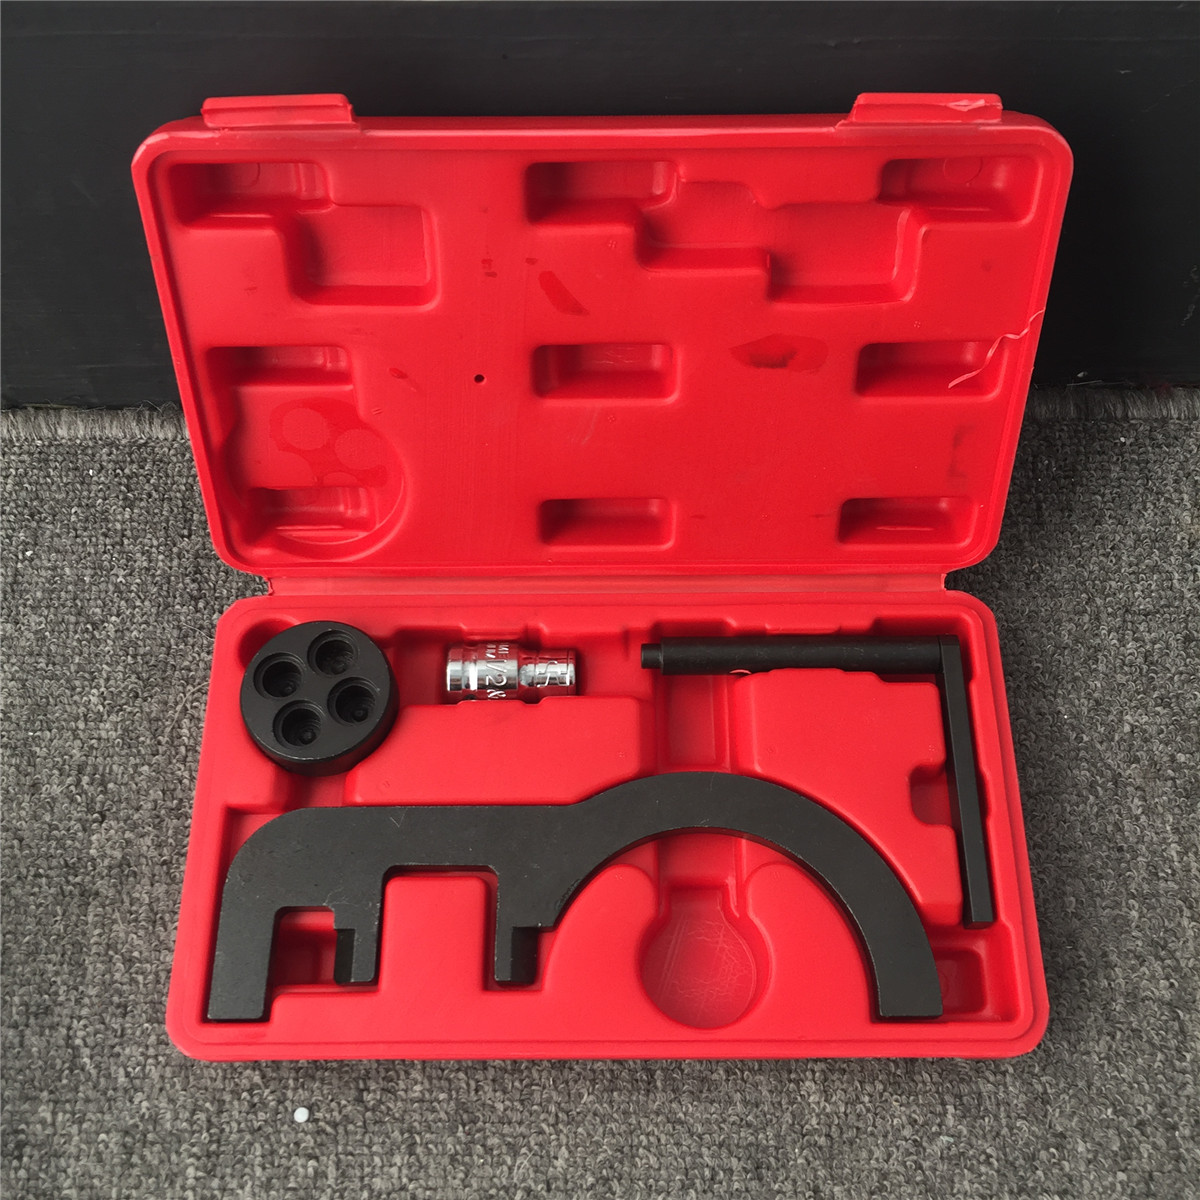 Engine Timing Tool Fits For BMW X1 X5 X6 N47 N47S N57 D20A D20B D20T0 D30U0 D30T0